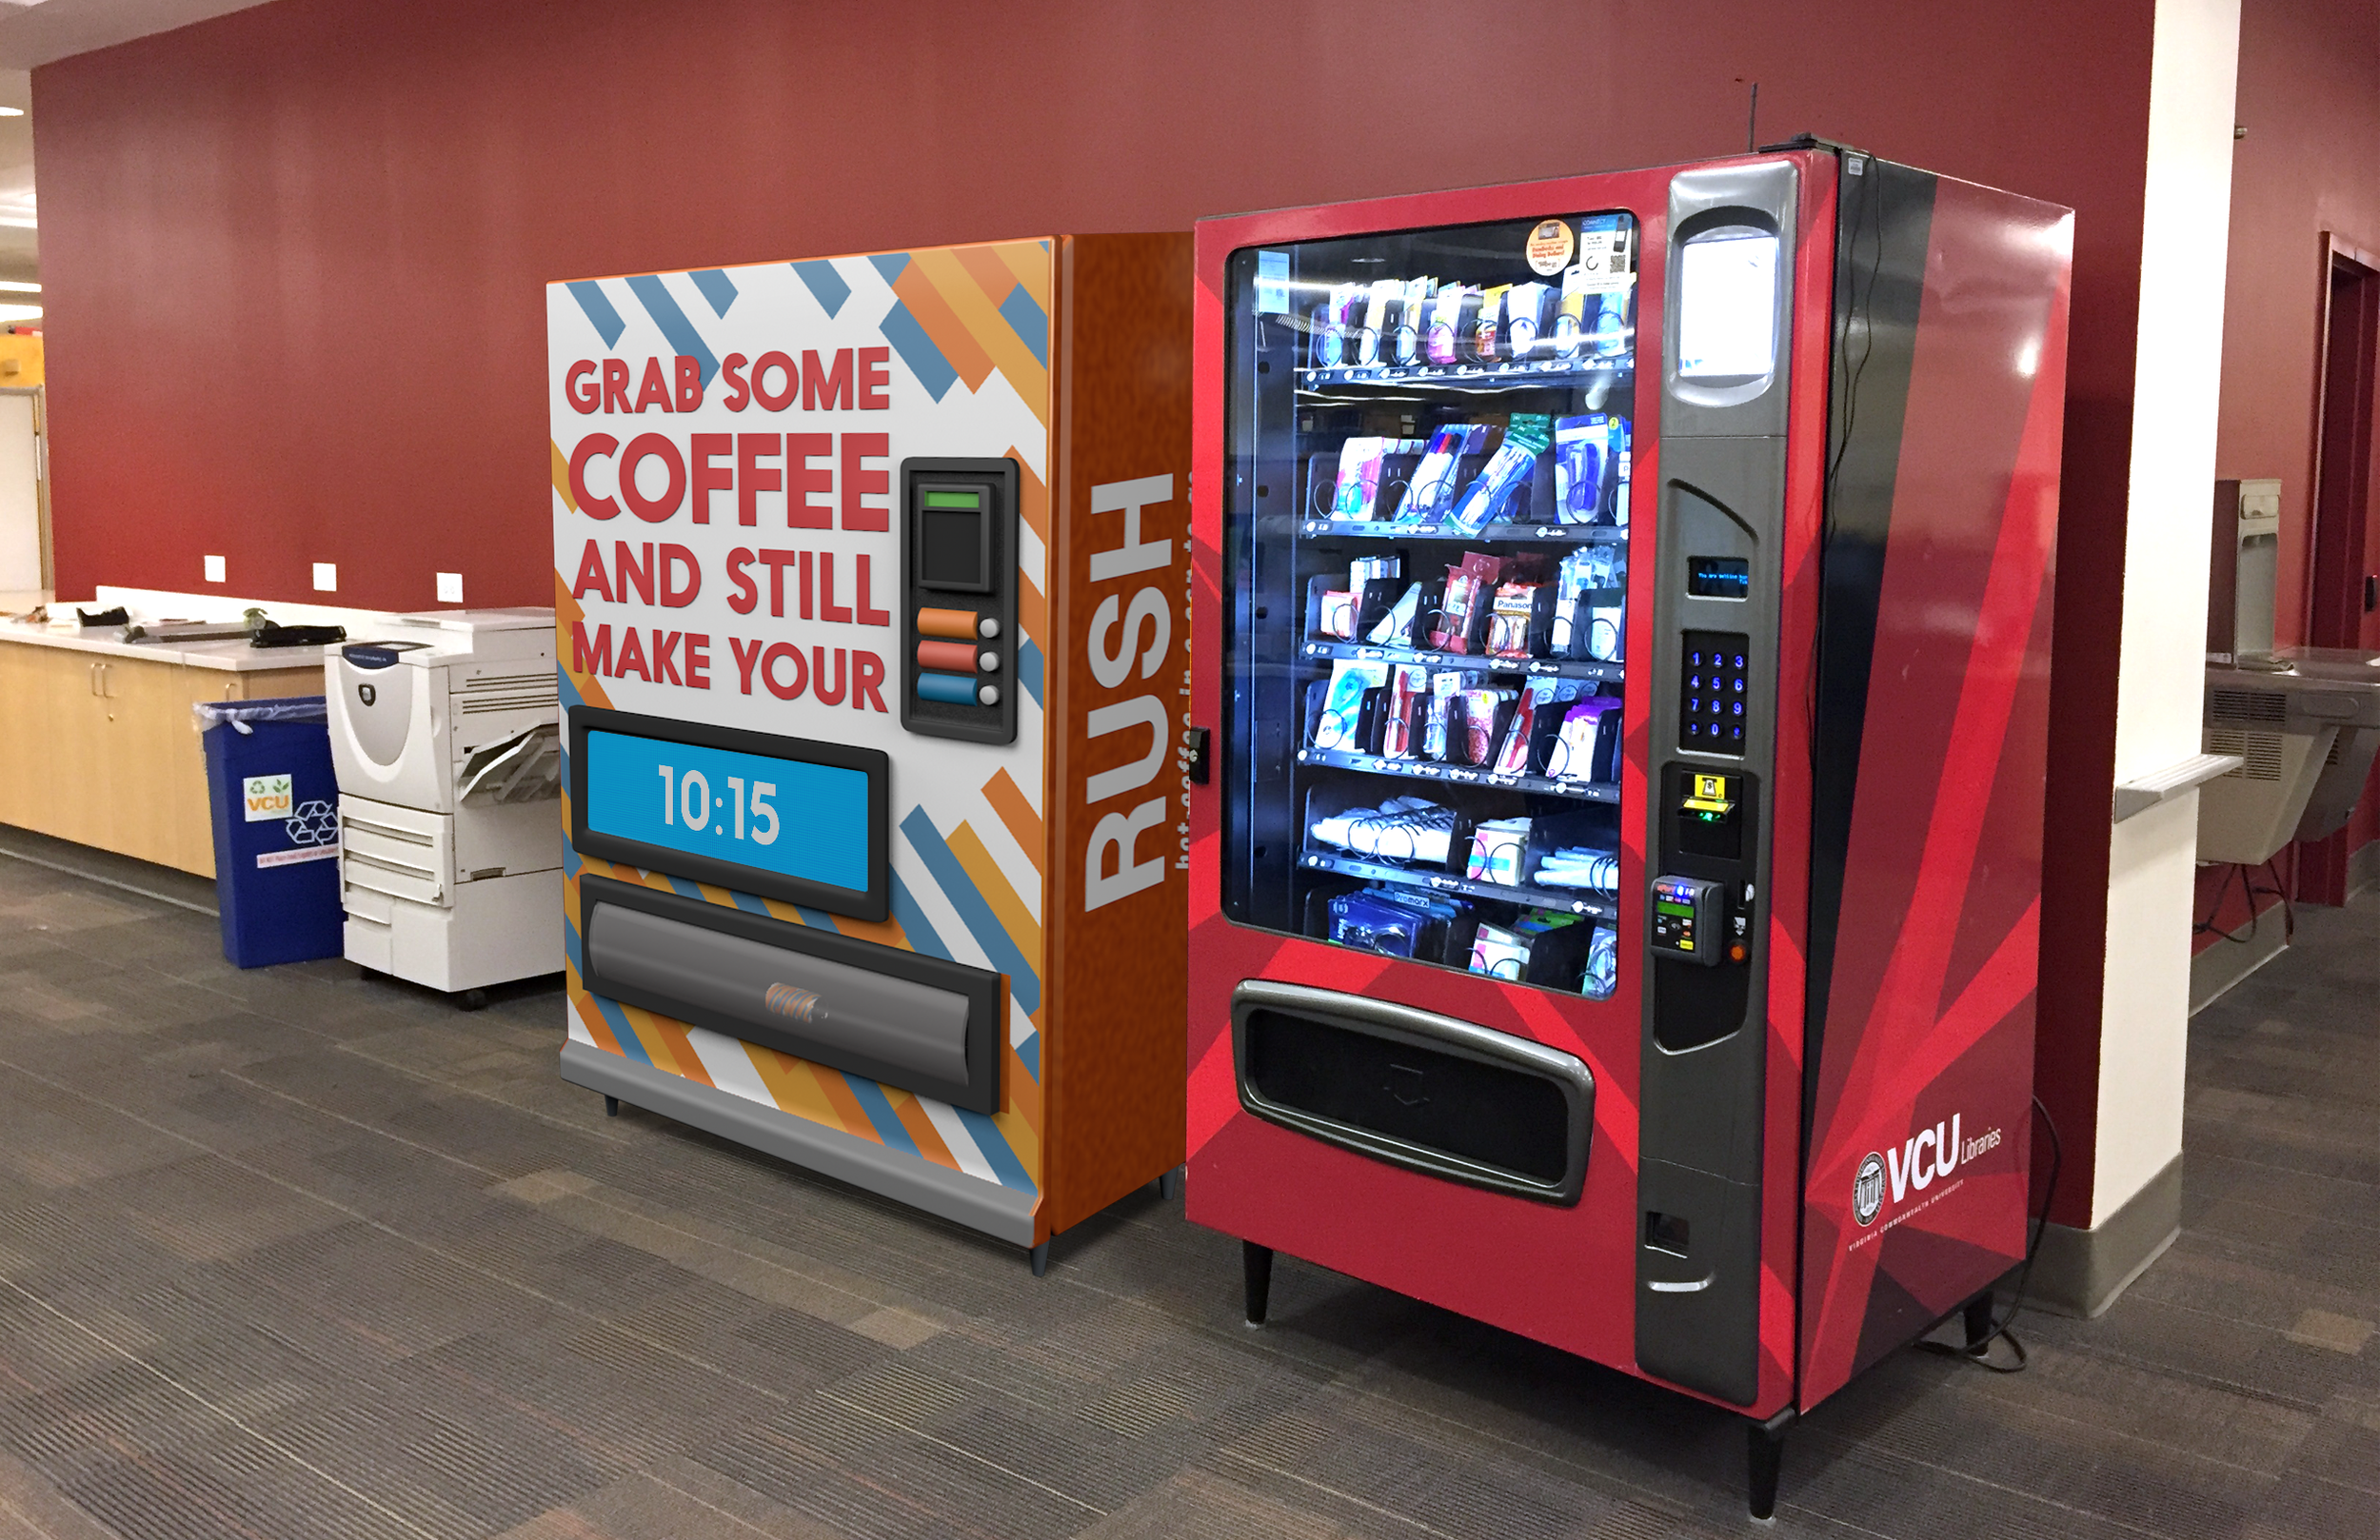 A lot of students fall into our target, so placing RUSH machines on college campuses would be a smart parnership